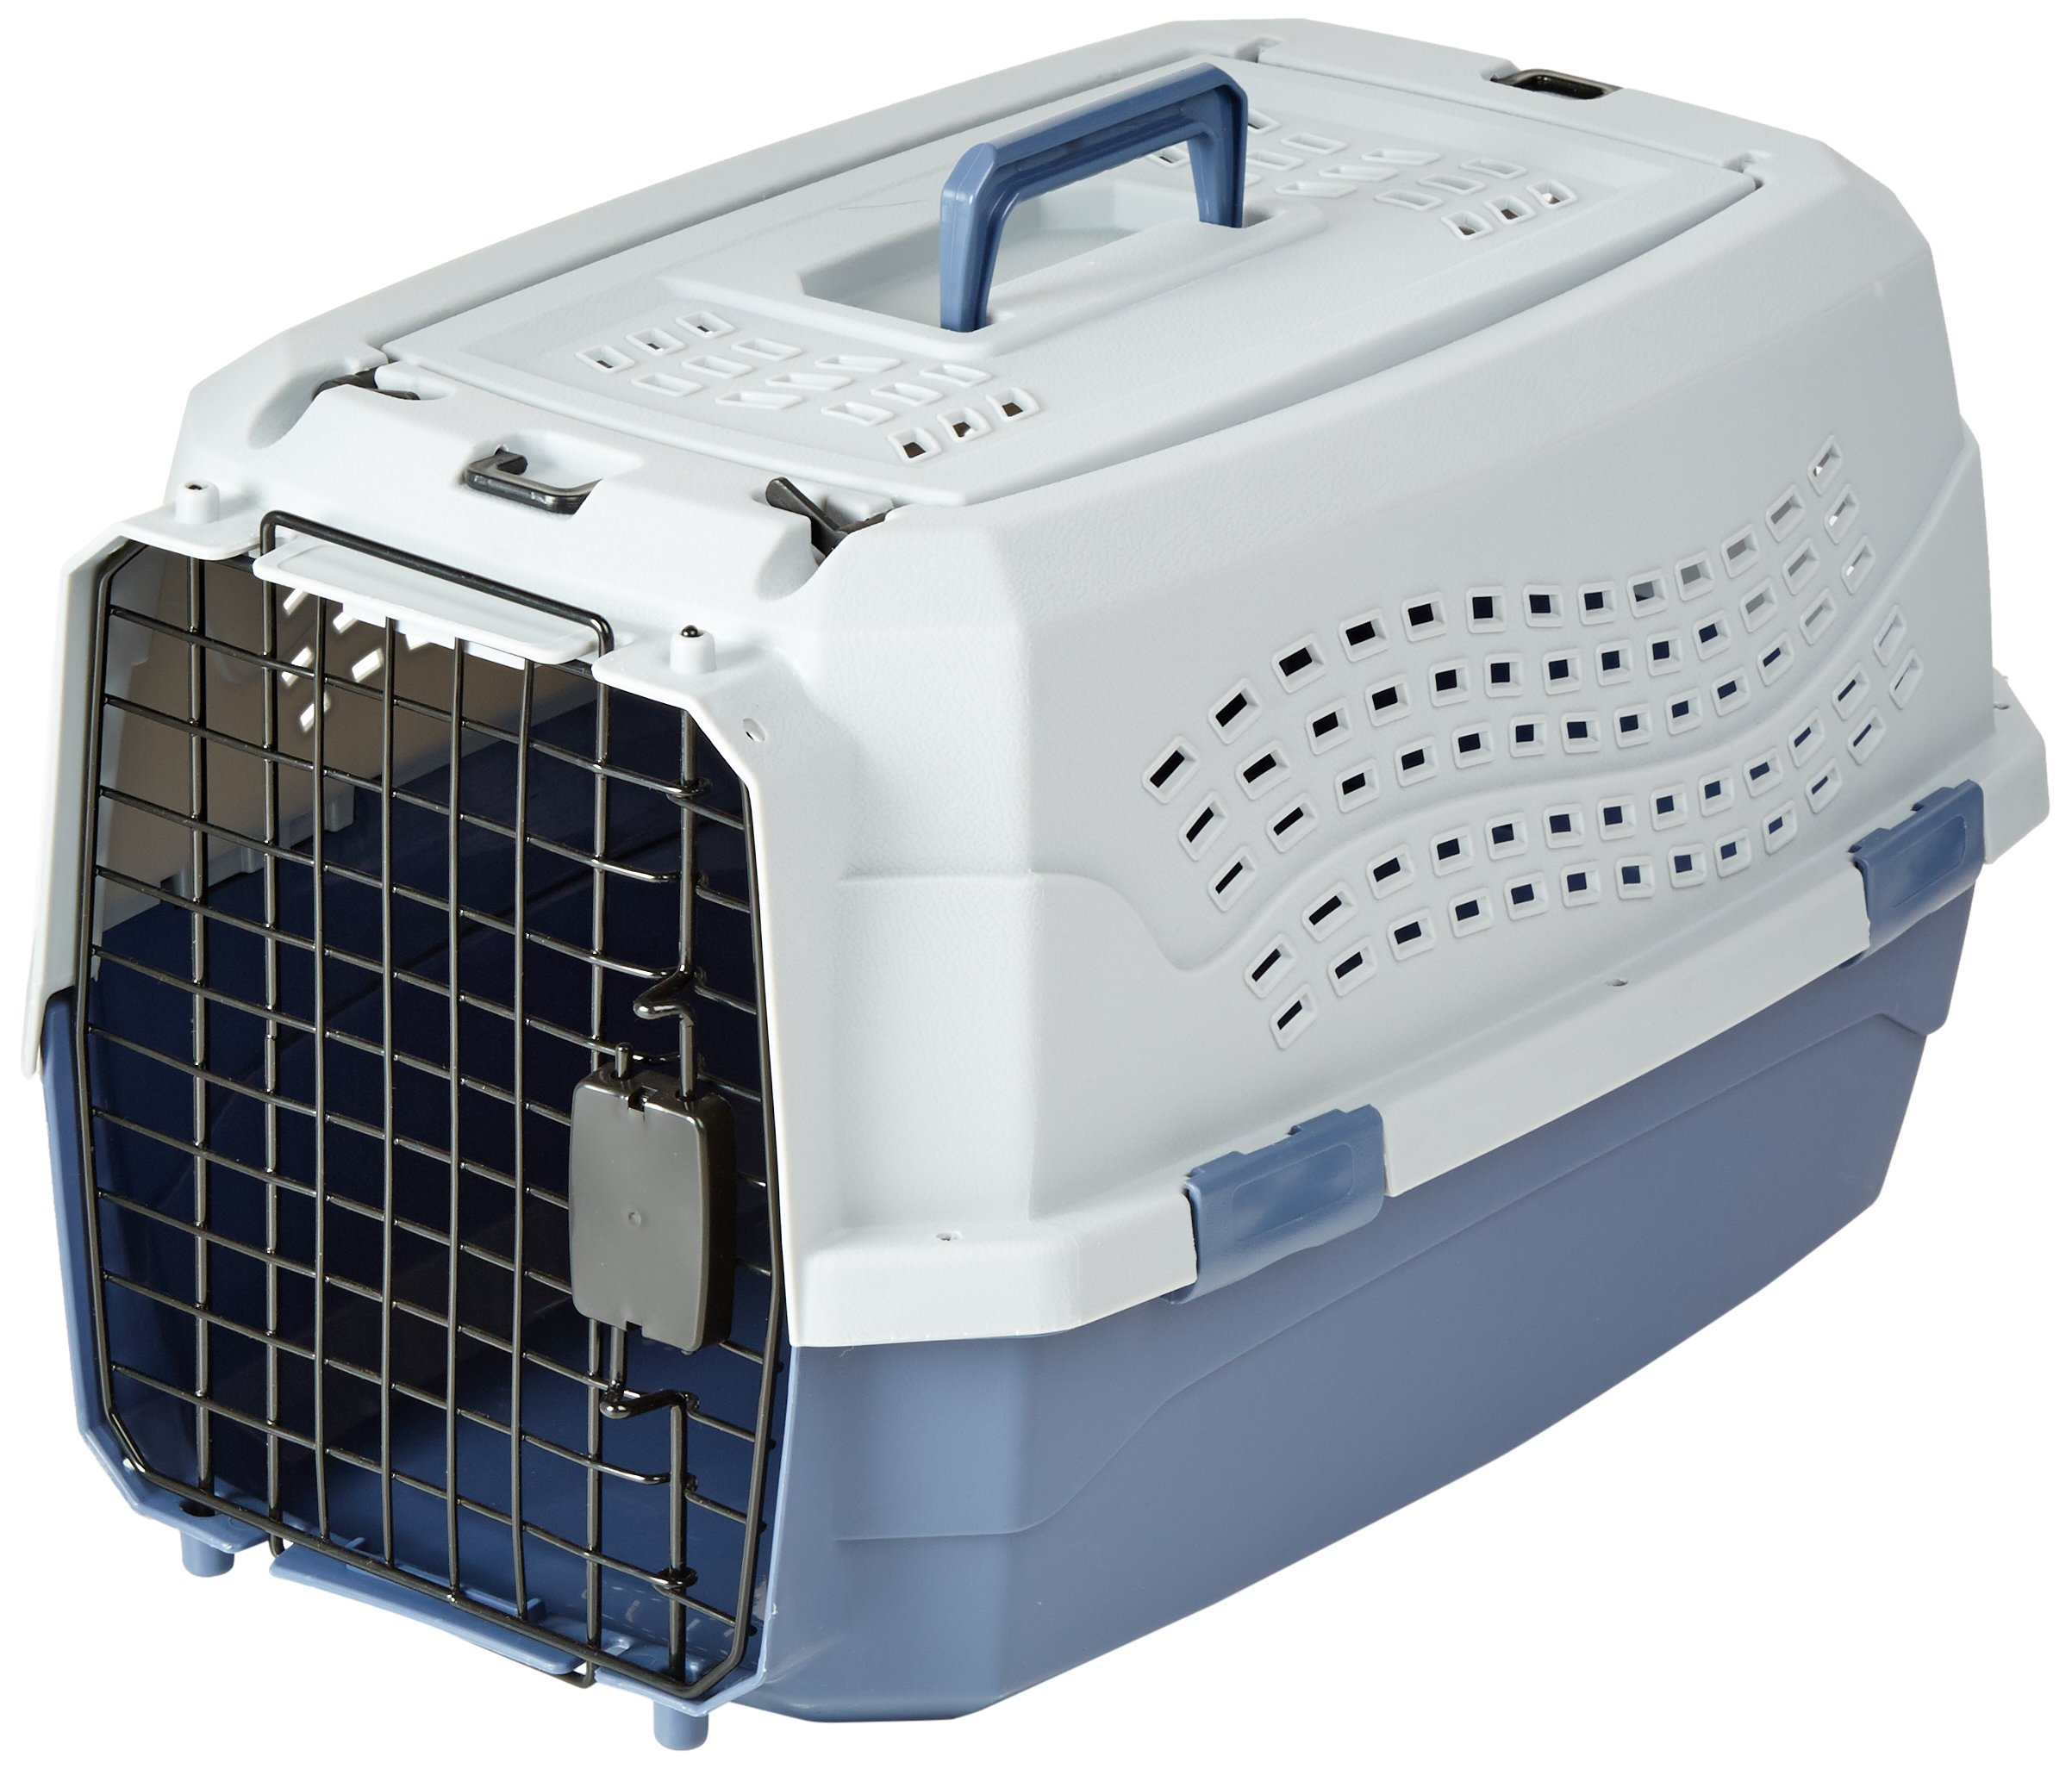 AmazonBasics Top-Load Pet Travel Kennel Carrier Crate For Cats Or Dogs - 13 x 15 x 23 Inches by AmazonBasics